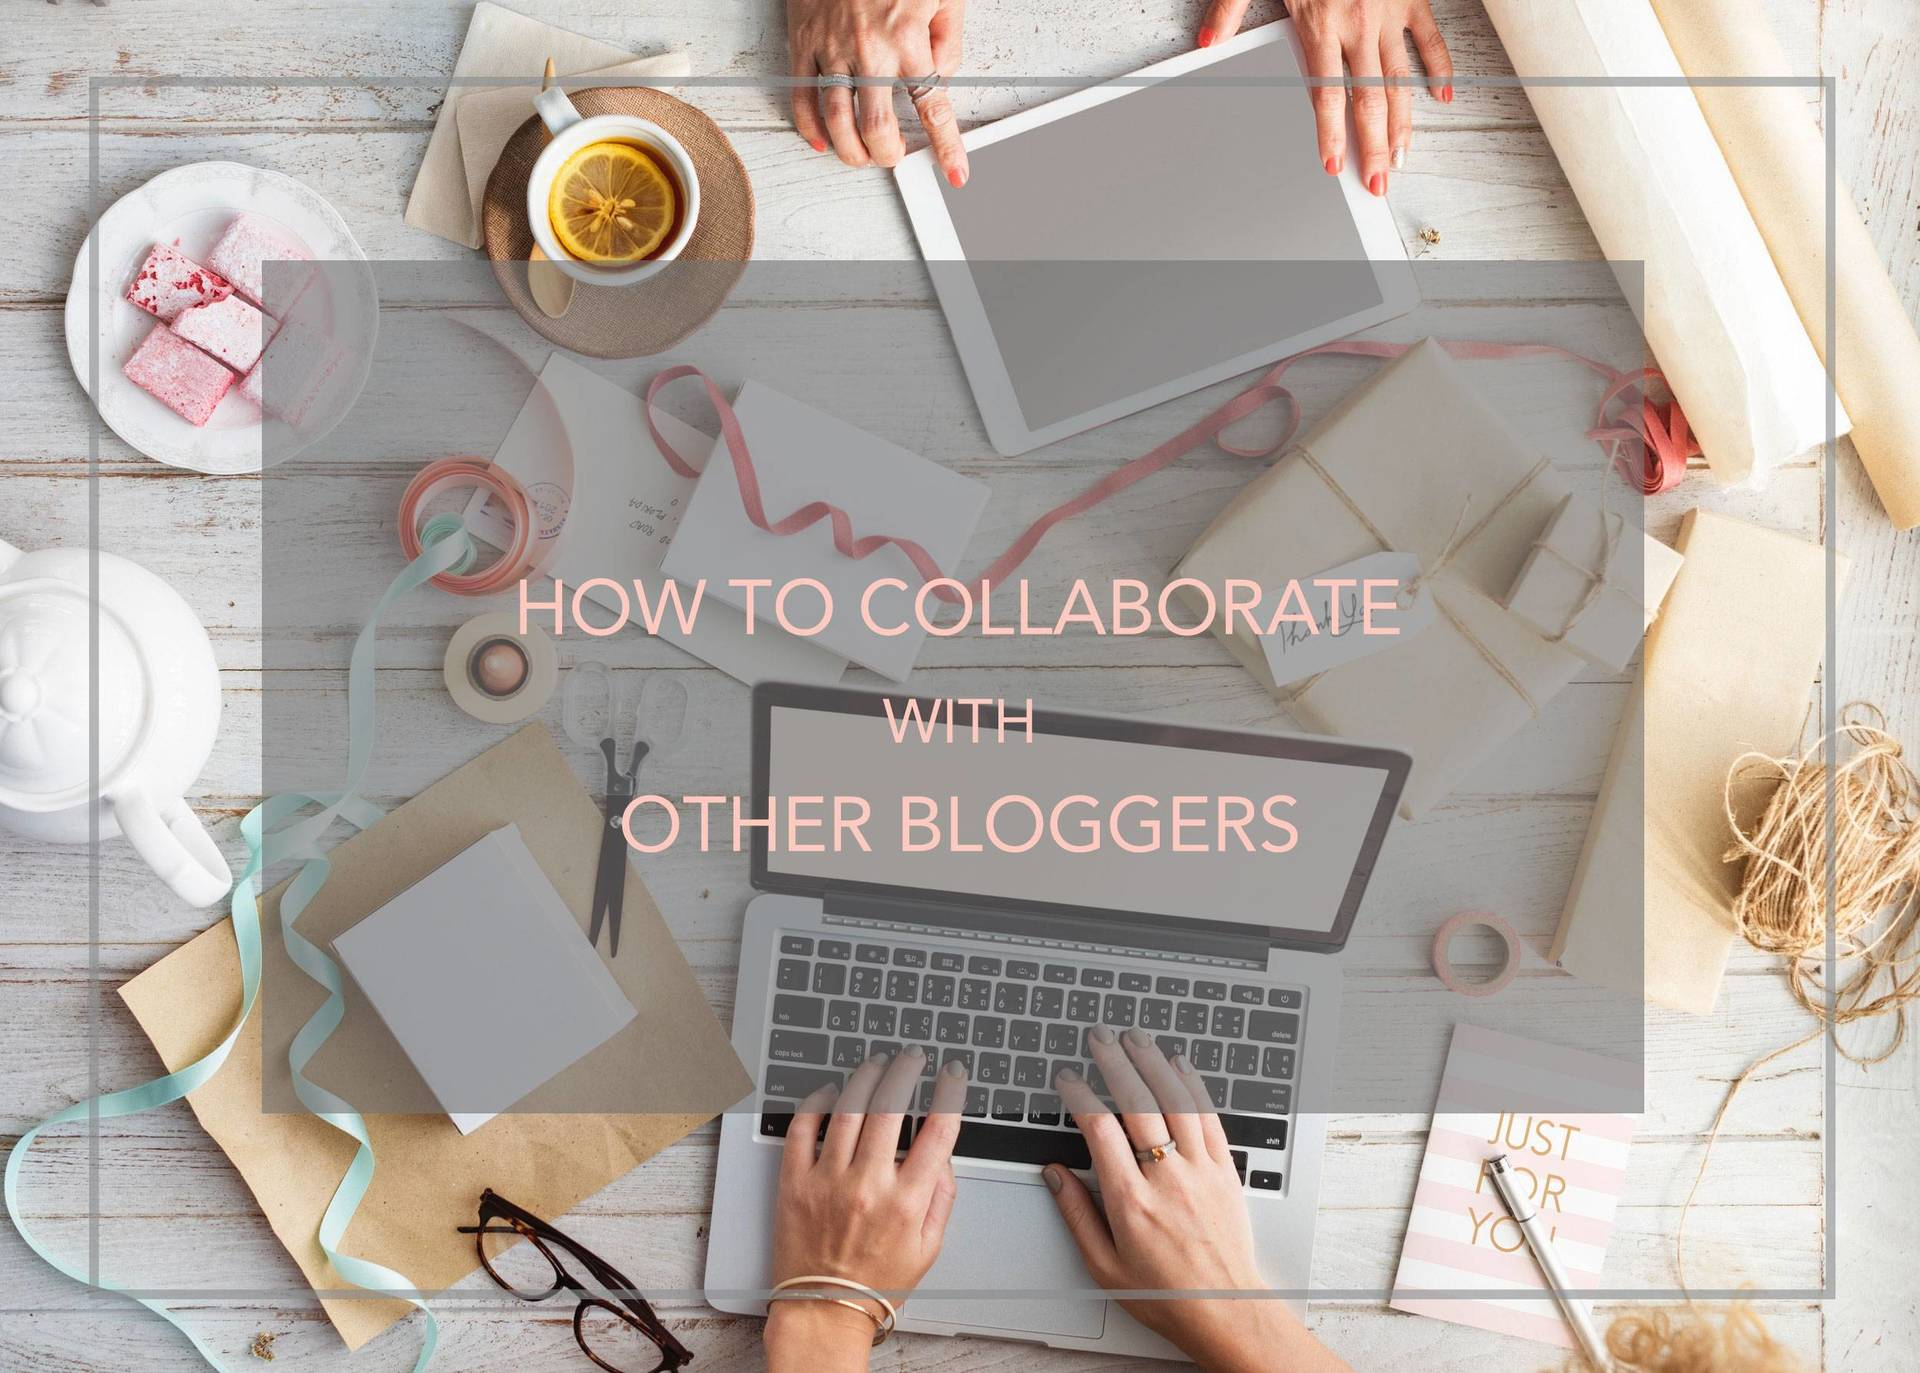 How to Collaborate with other Bloggers image